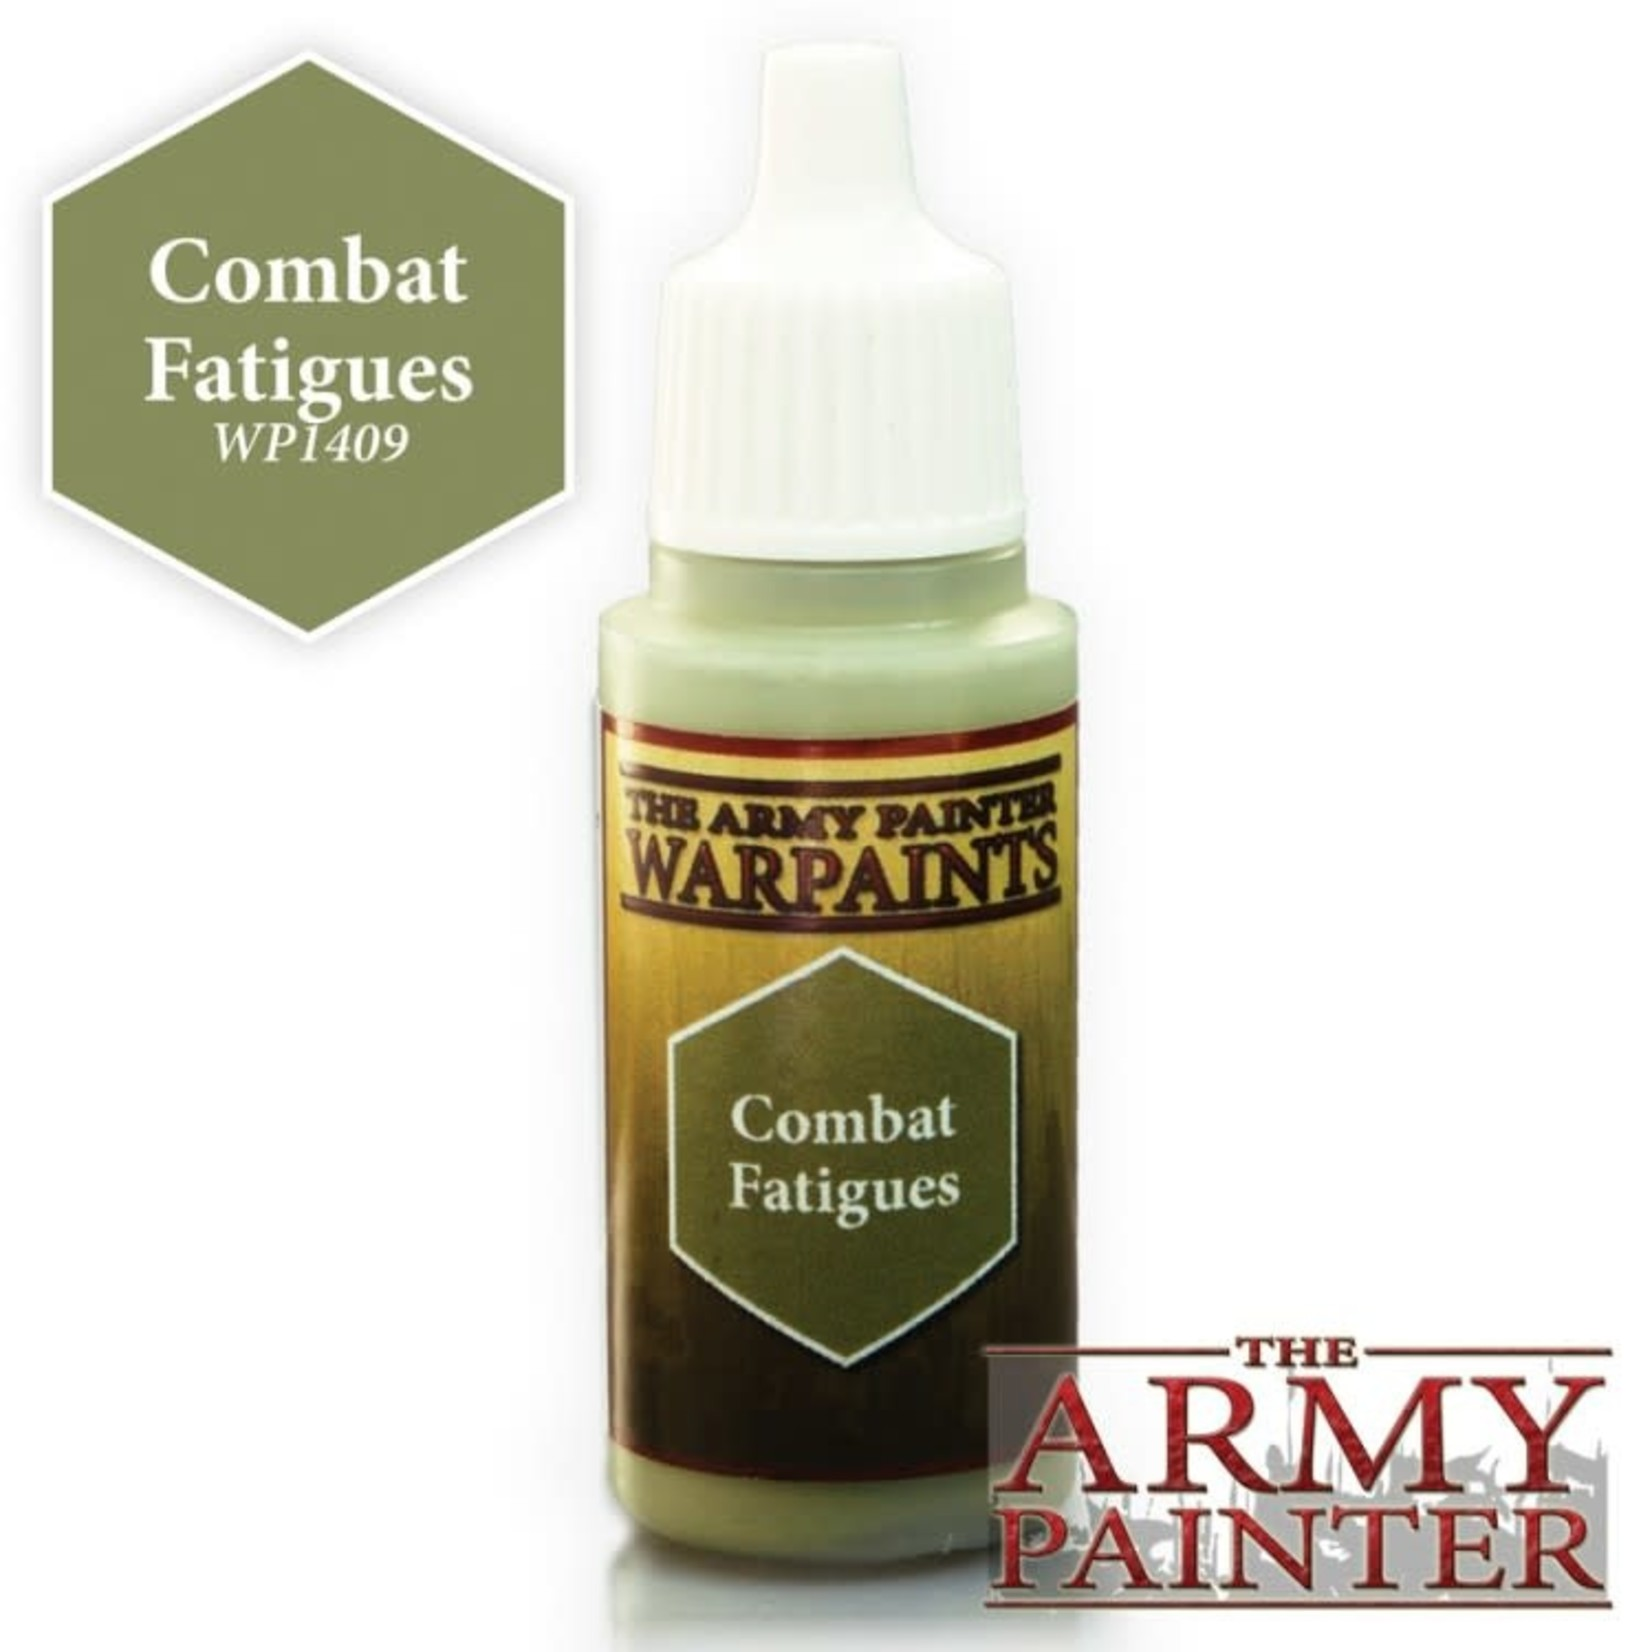 The Army Painter The Army Painter: Warpaints: Combat Fatigues